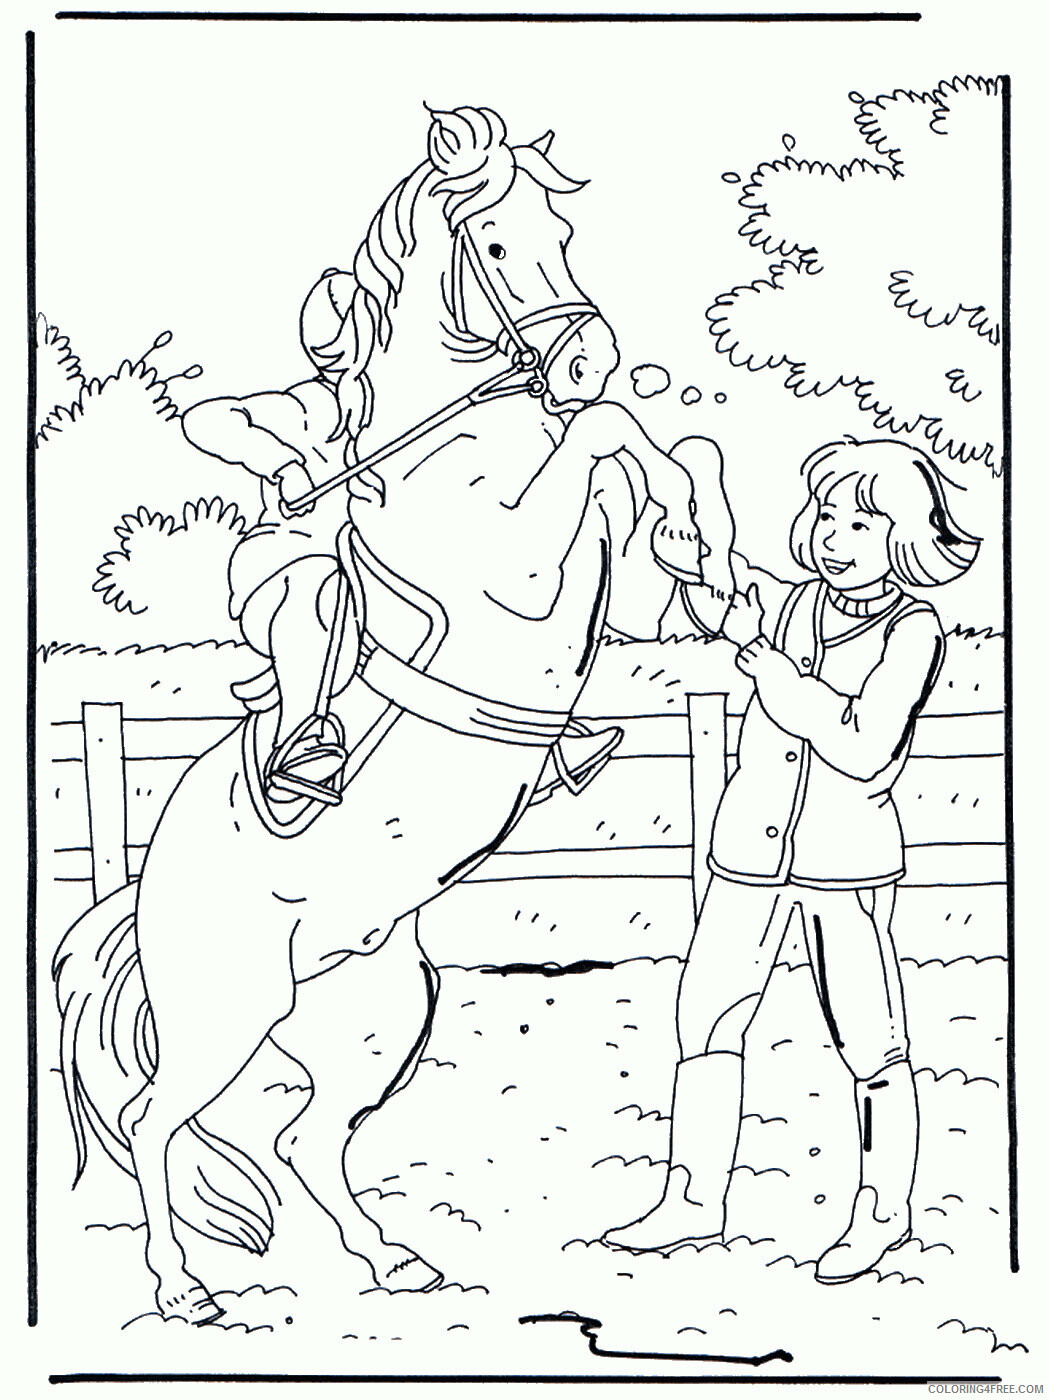 Horses Coloring Pages Animal Printable Sheets horses_cl_40 2021 2793 Coloring4free